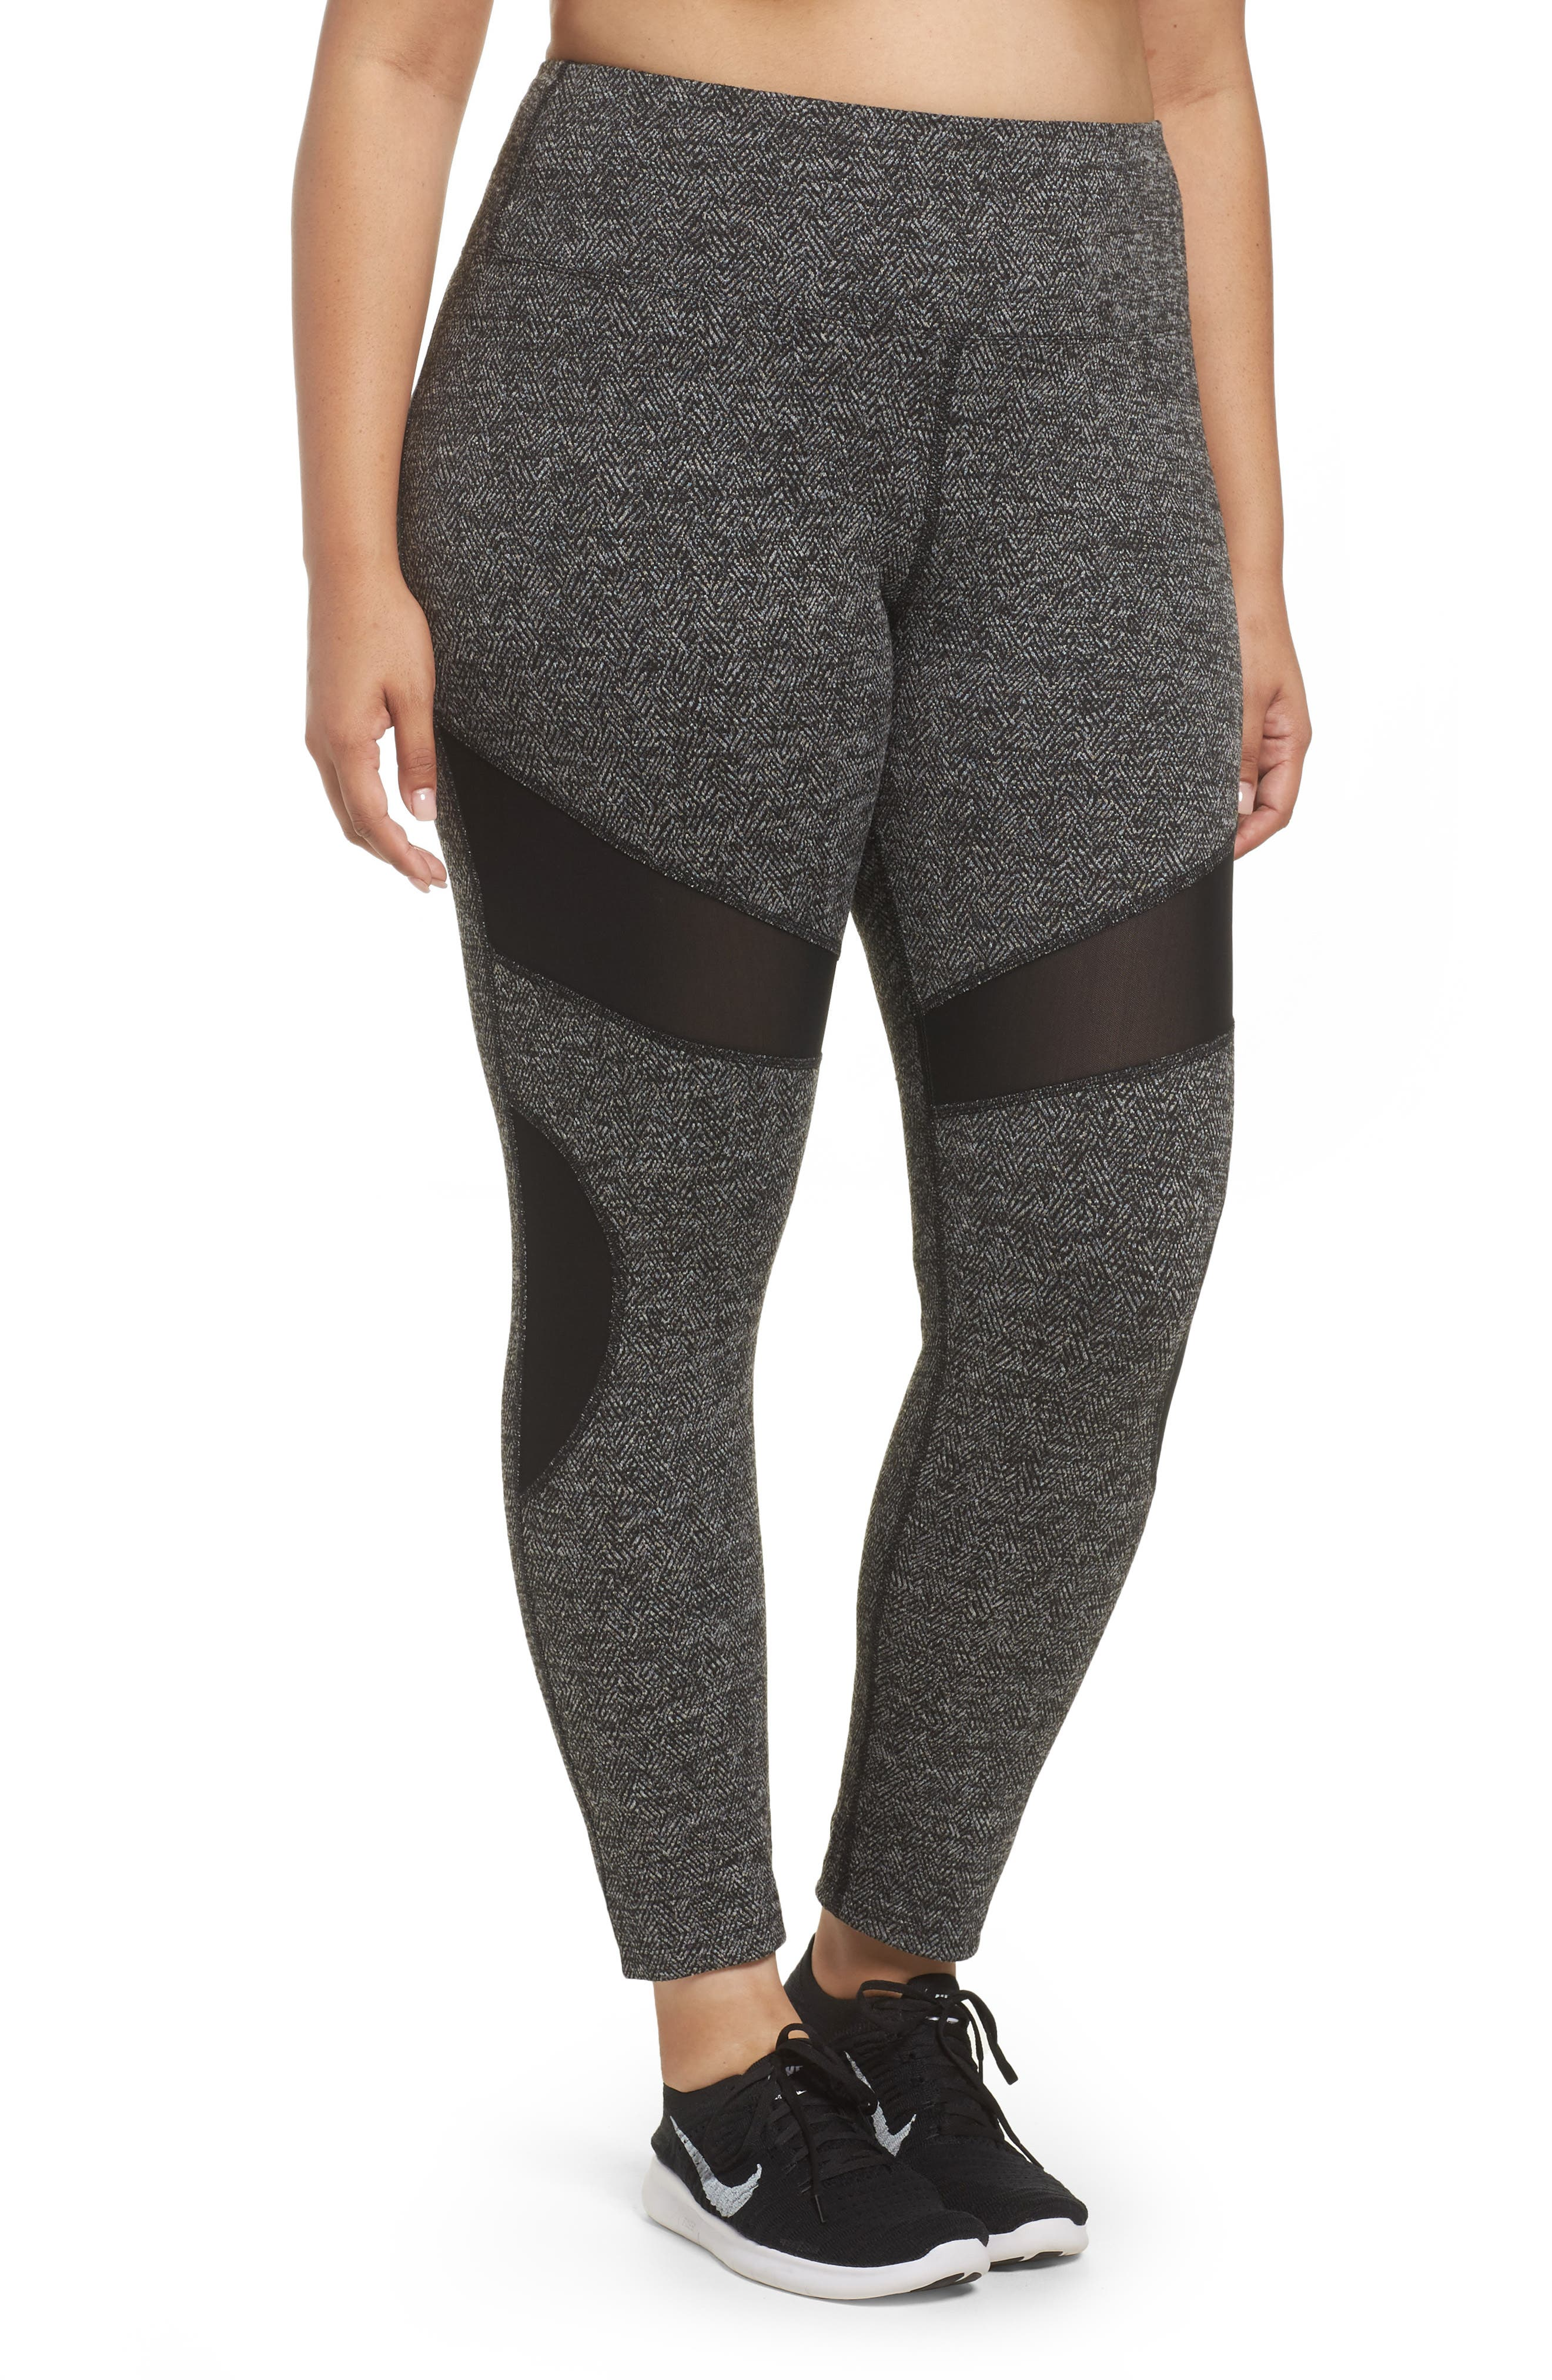 Optic High Waist Leggings,                         Main,                         color, Black